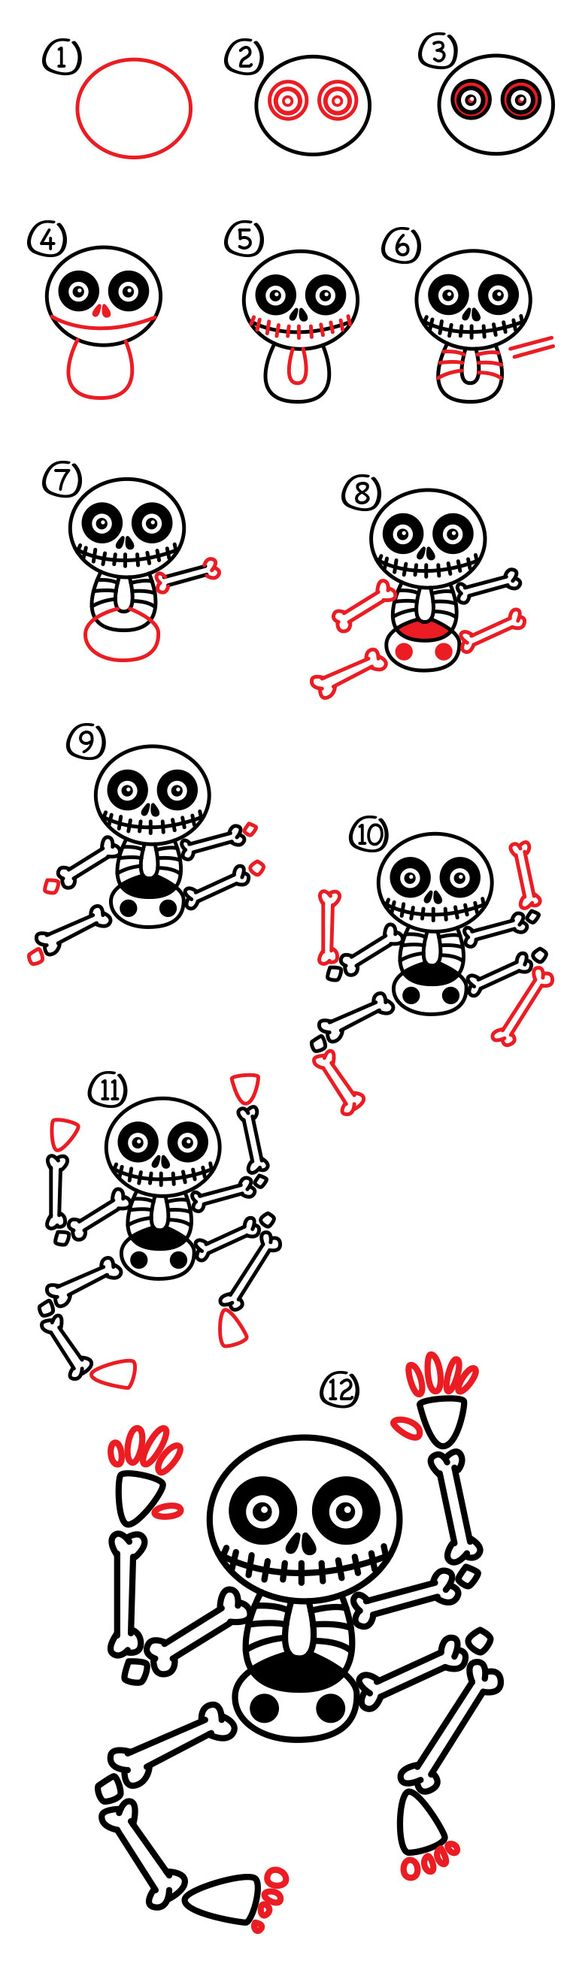 Cool Step by step Skeleton